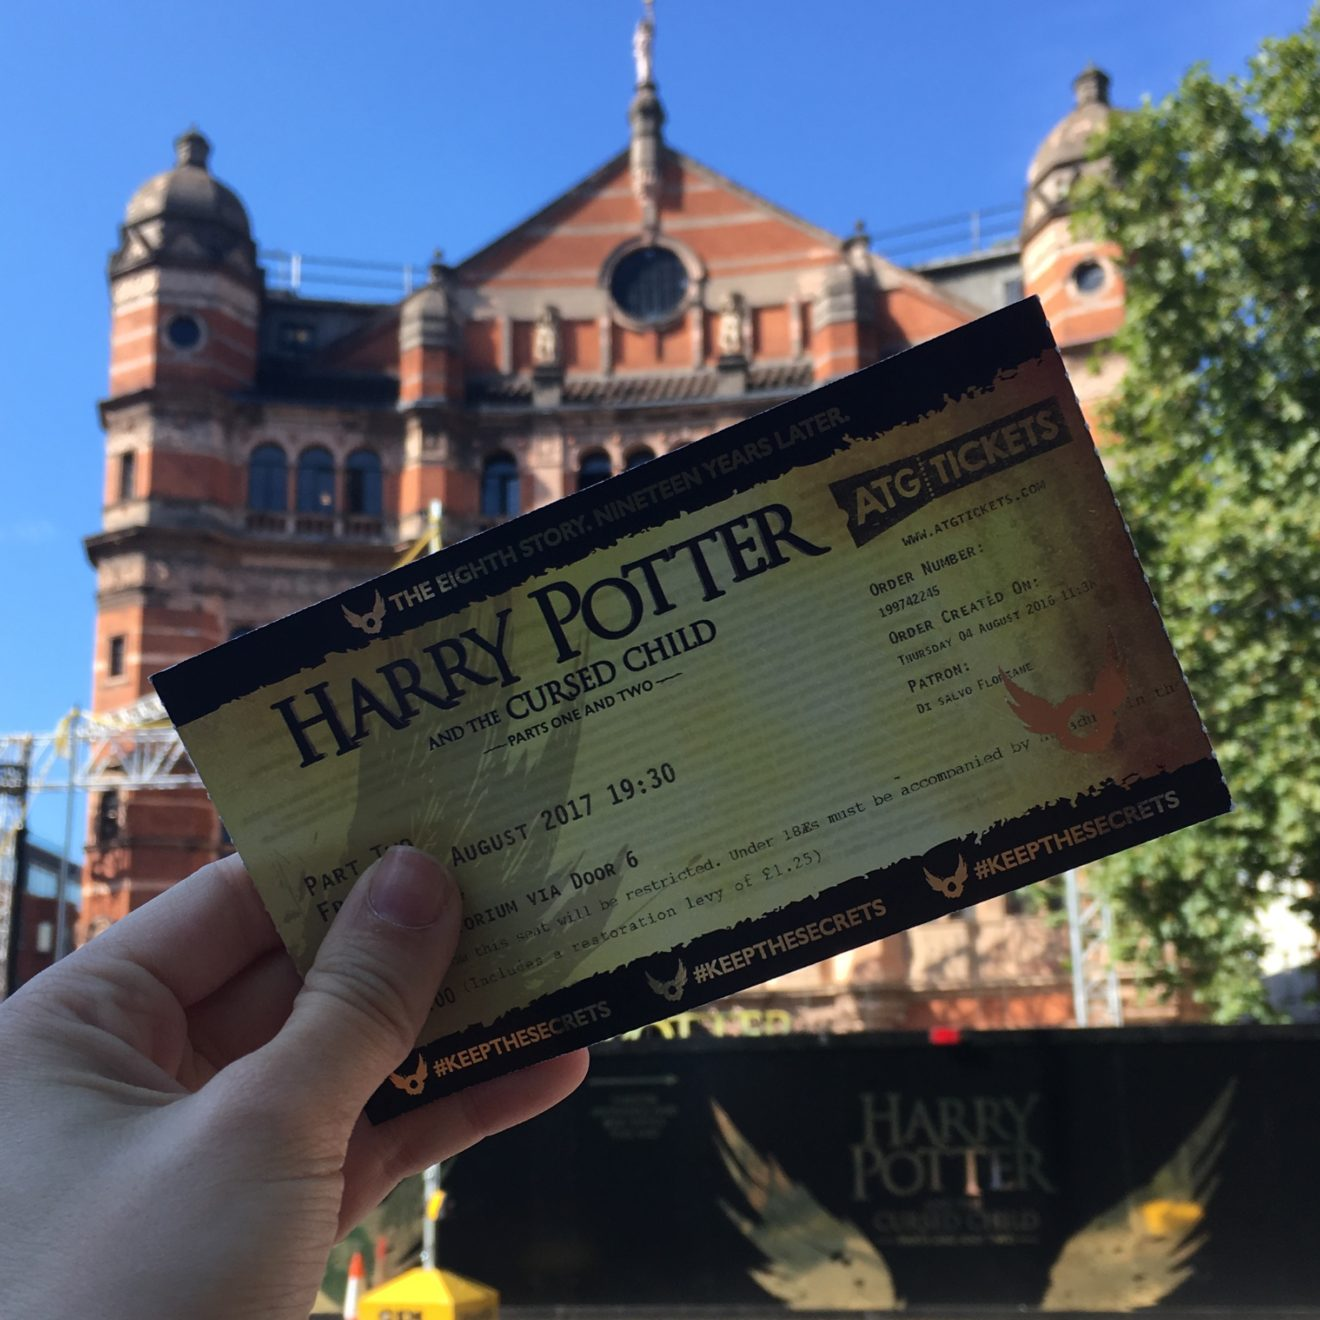 Billet Harry Potter and the cursed child